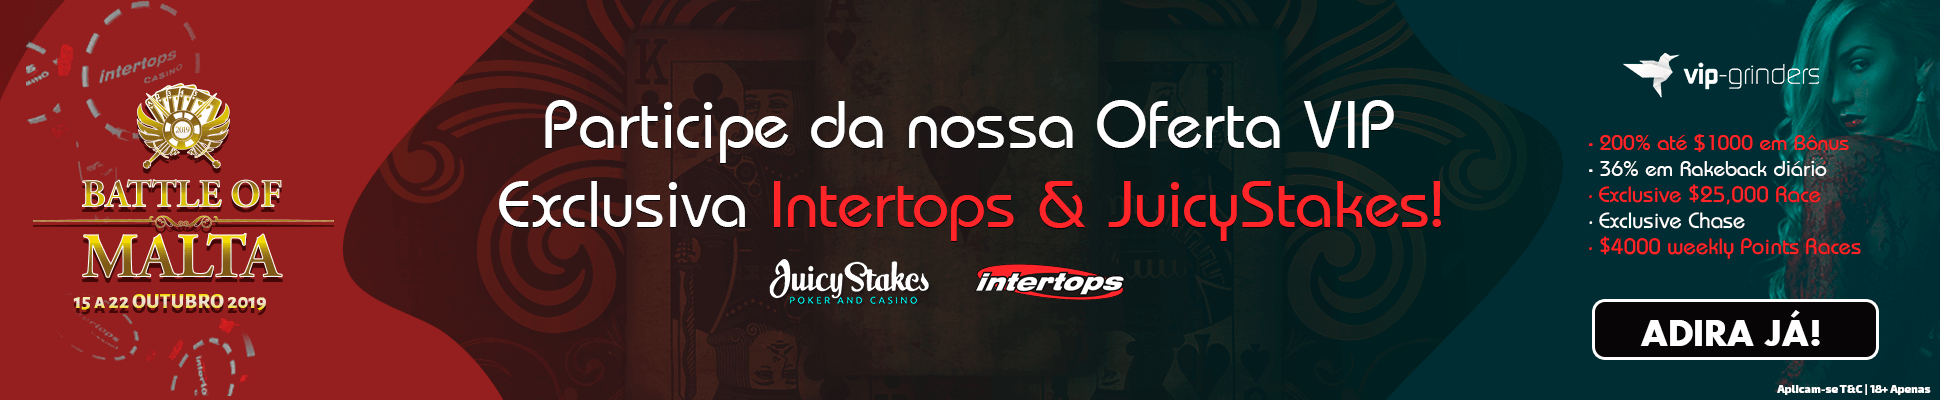 intertops-and-juicystakes-slider-august